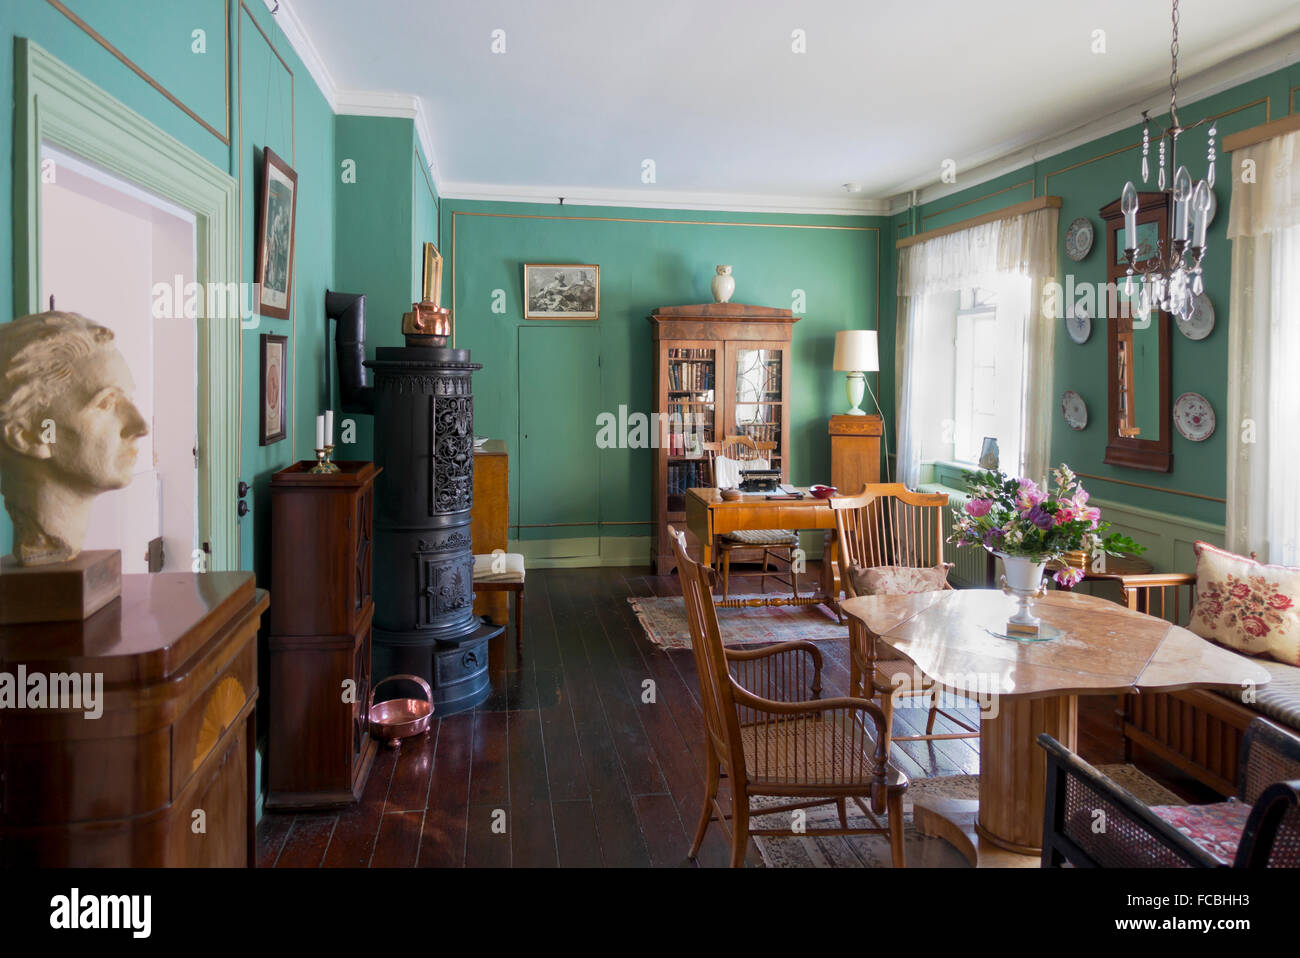 Interior of the Green Room at Rungstedlund, Karen Blixen's house, now a museum, in Rungsted, 20 km north of - Stock Image